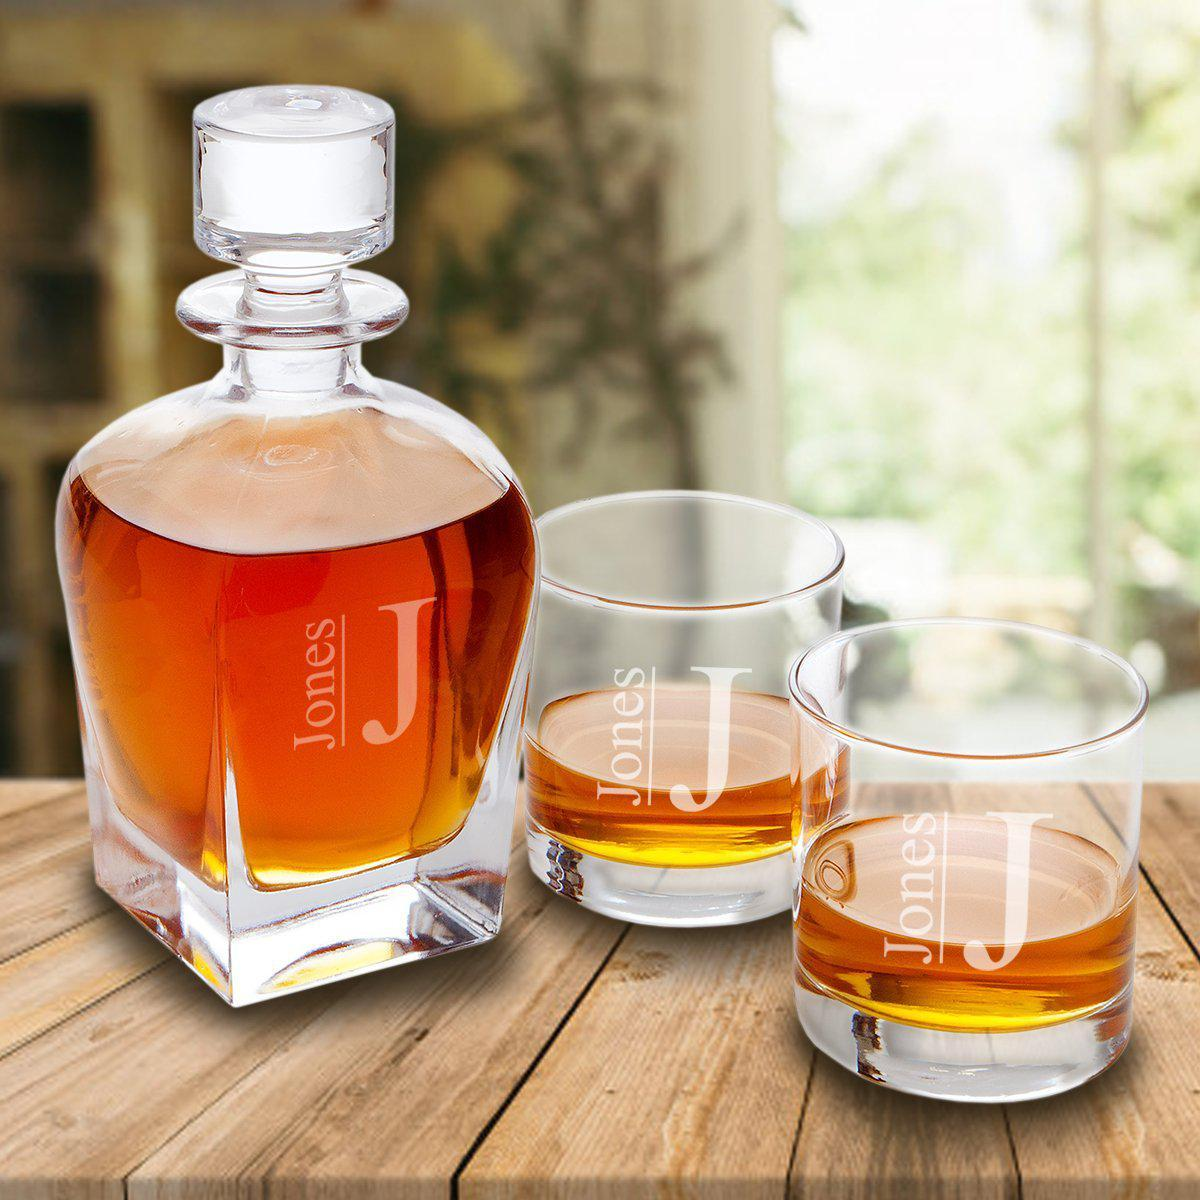 Personalized Antique 24 oz. Whiskey Decanter - Set of 2 Lowball Glasses